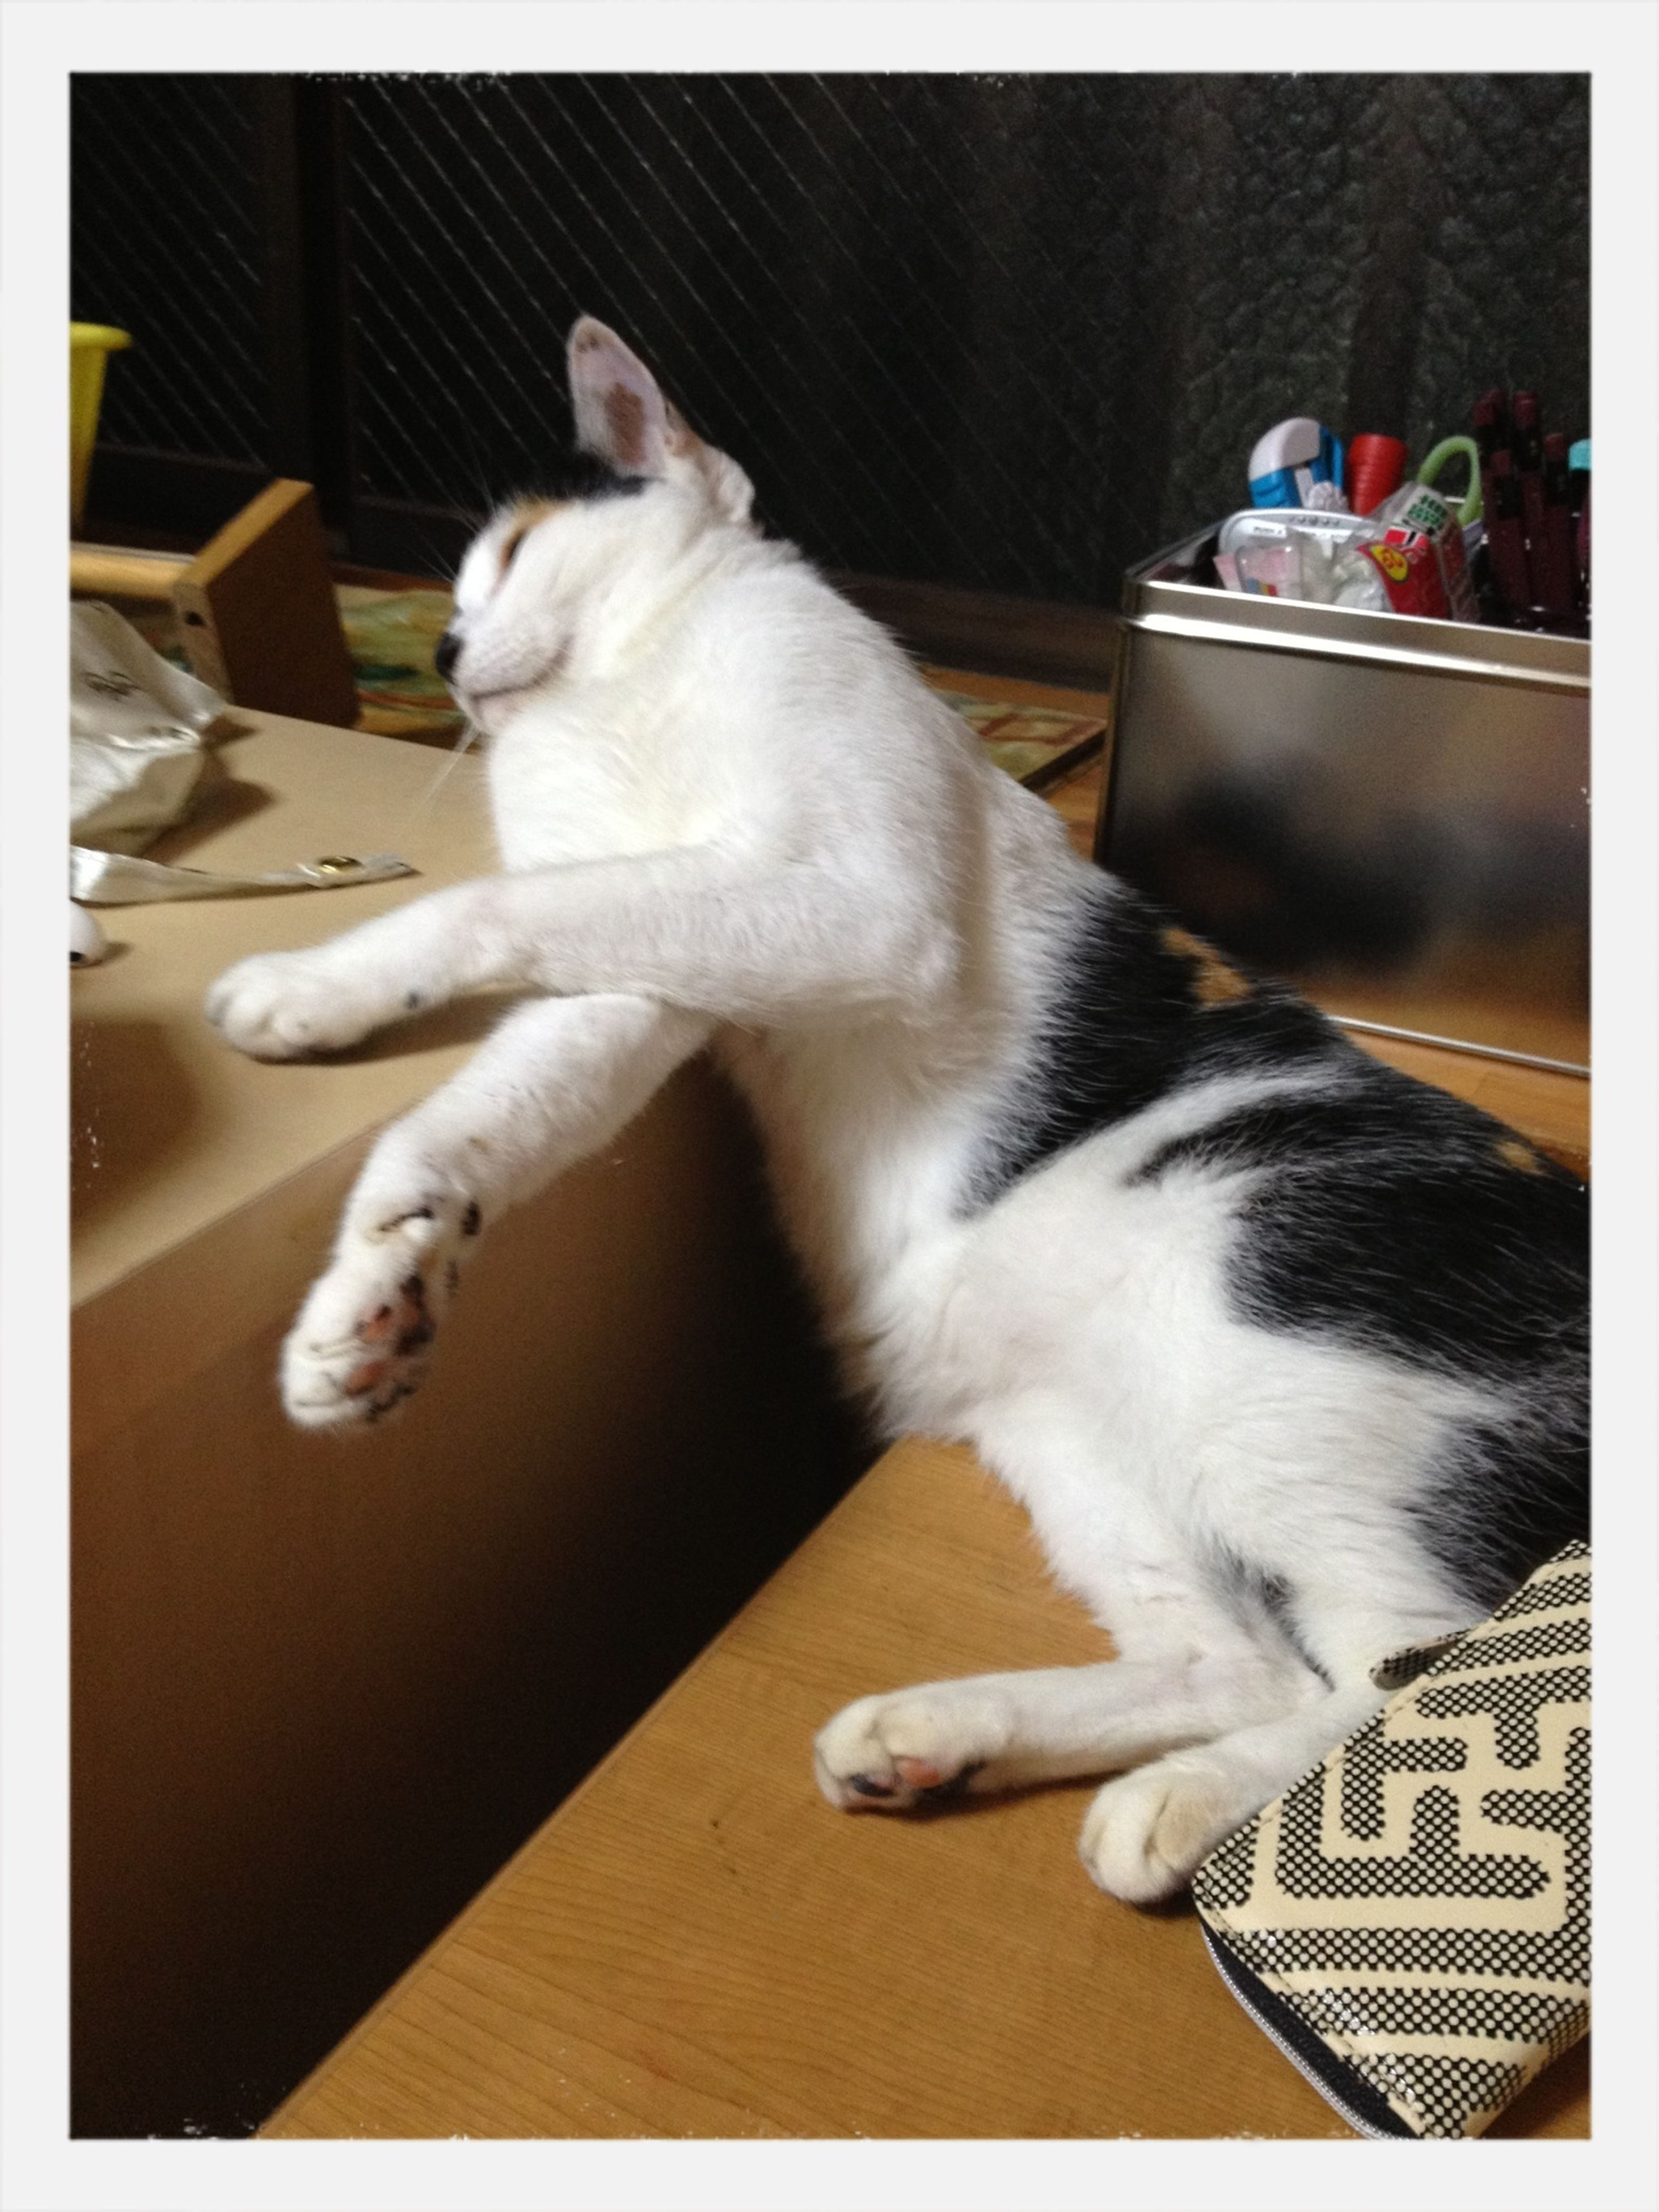 transfer print, animal themes, pets, domestic animals, indoors, one animal, auto post production filter, mammal, domestic cat, cat, relaxation, home interior, feline, resting, white color, sleeping, high angle view, full length, lying down, sitting